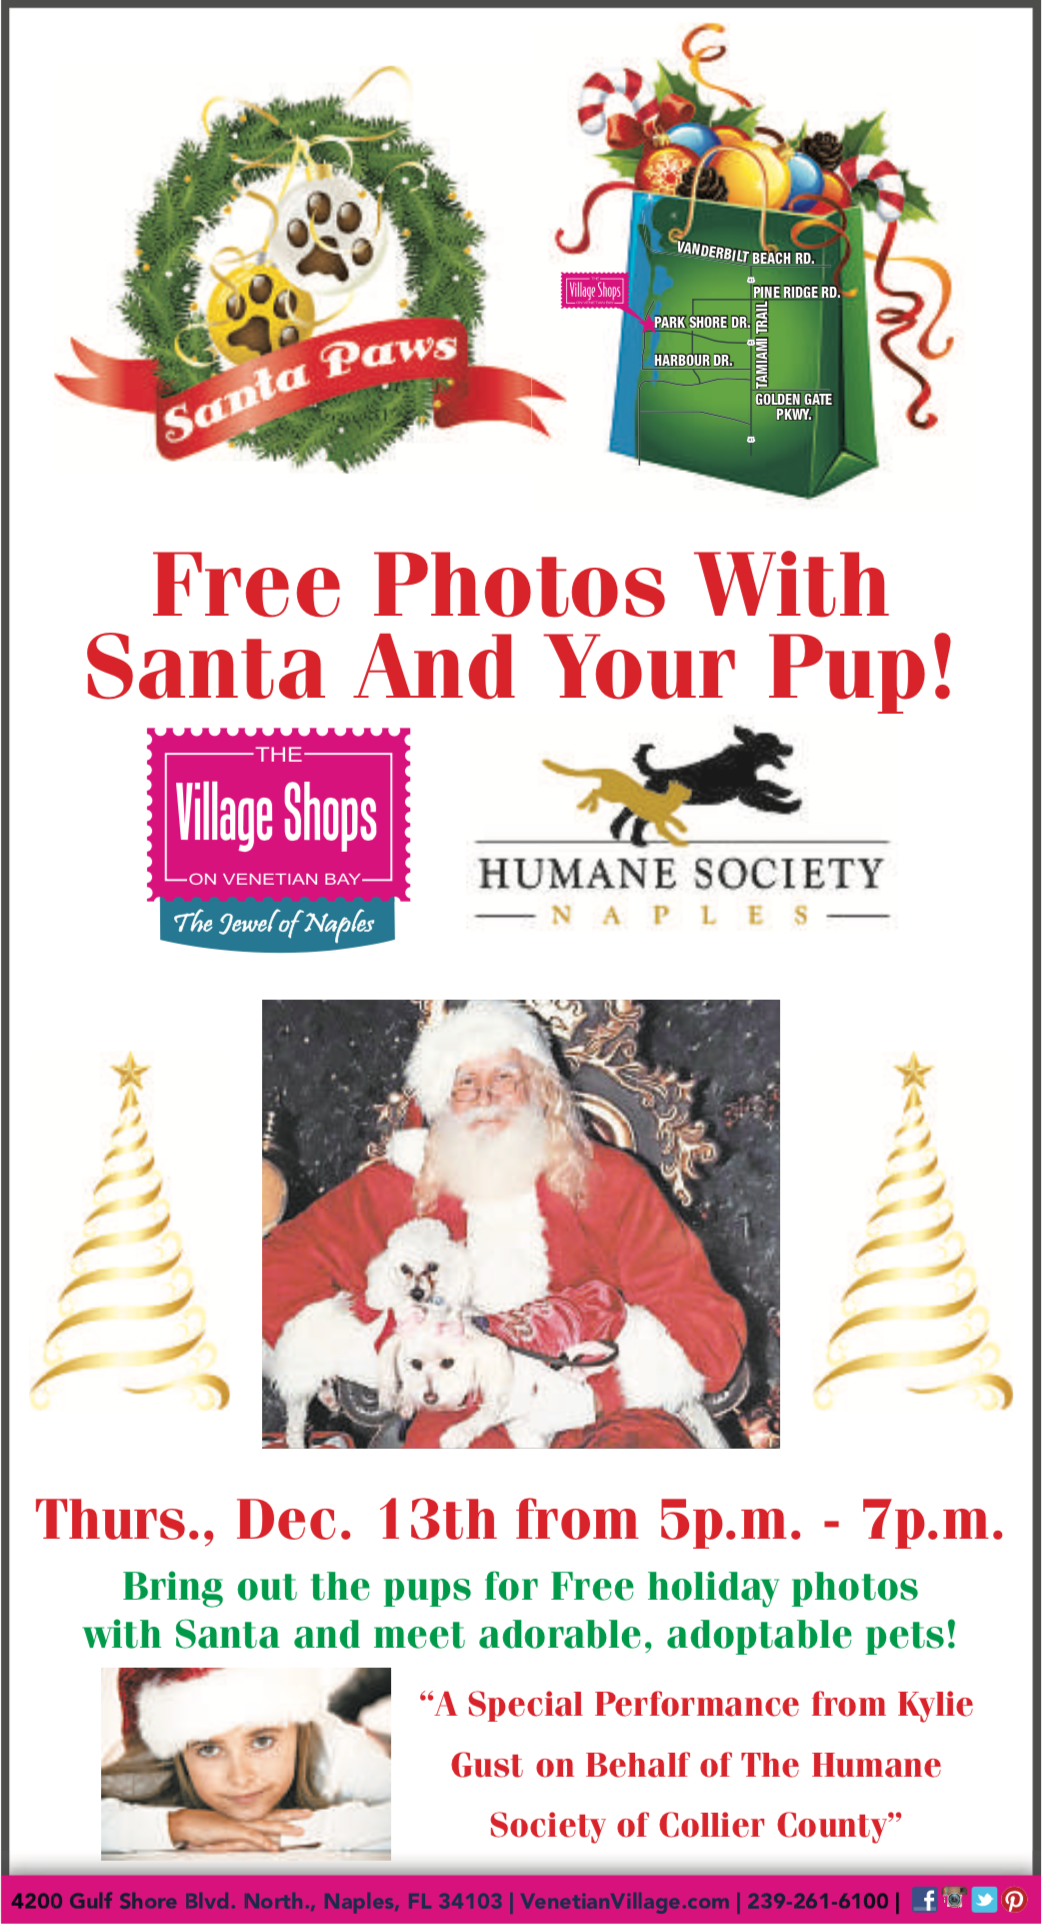 Santa Paws at The Village Shops on Venetian Bay